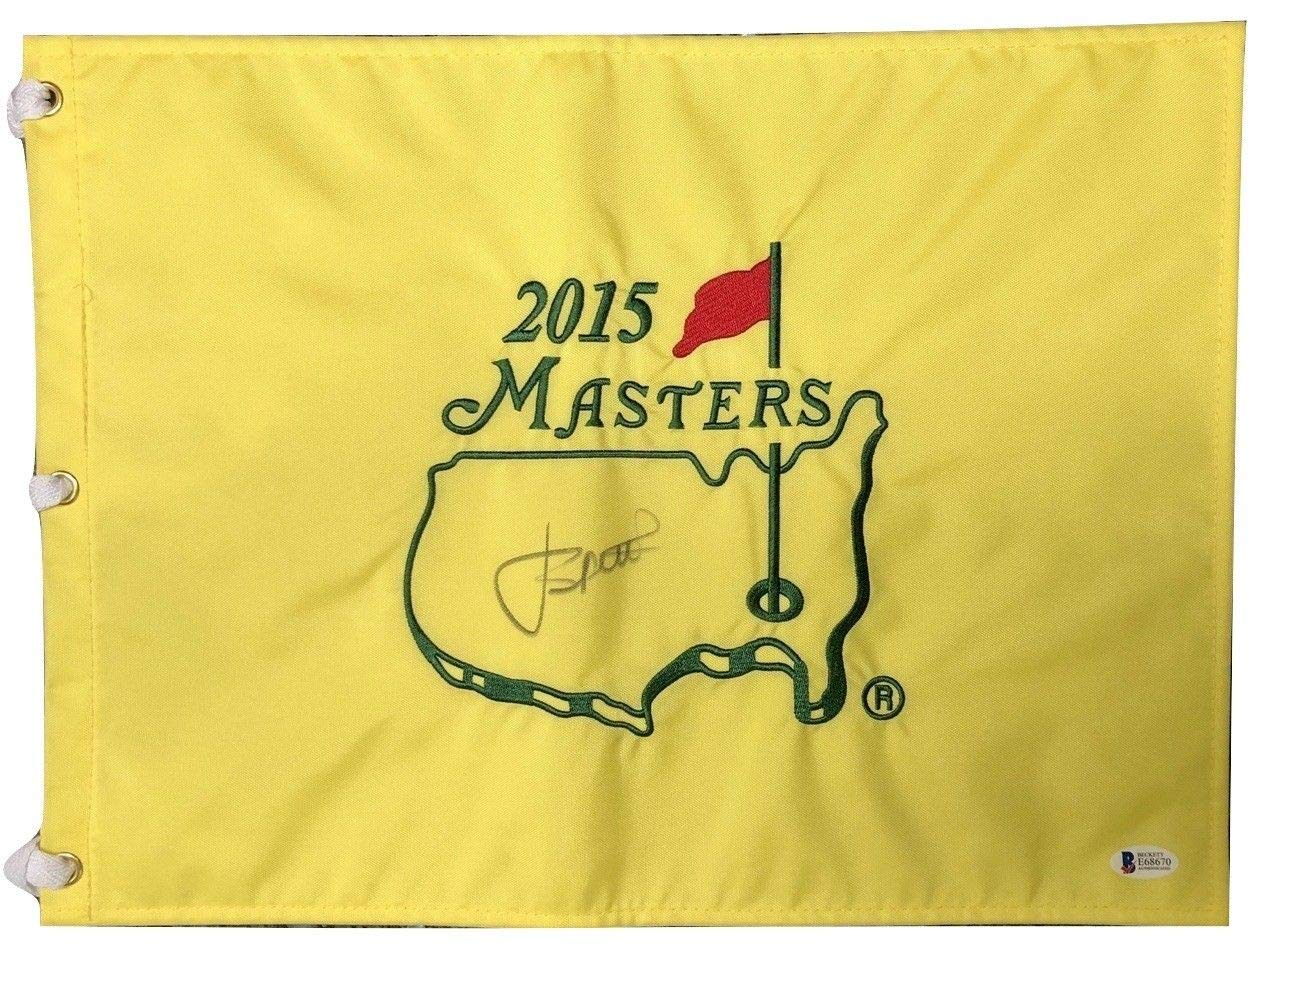 Jordan Spieth Signed Autographed 2015 Masters Flag BECKETT